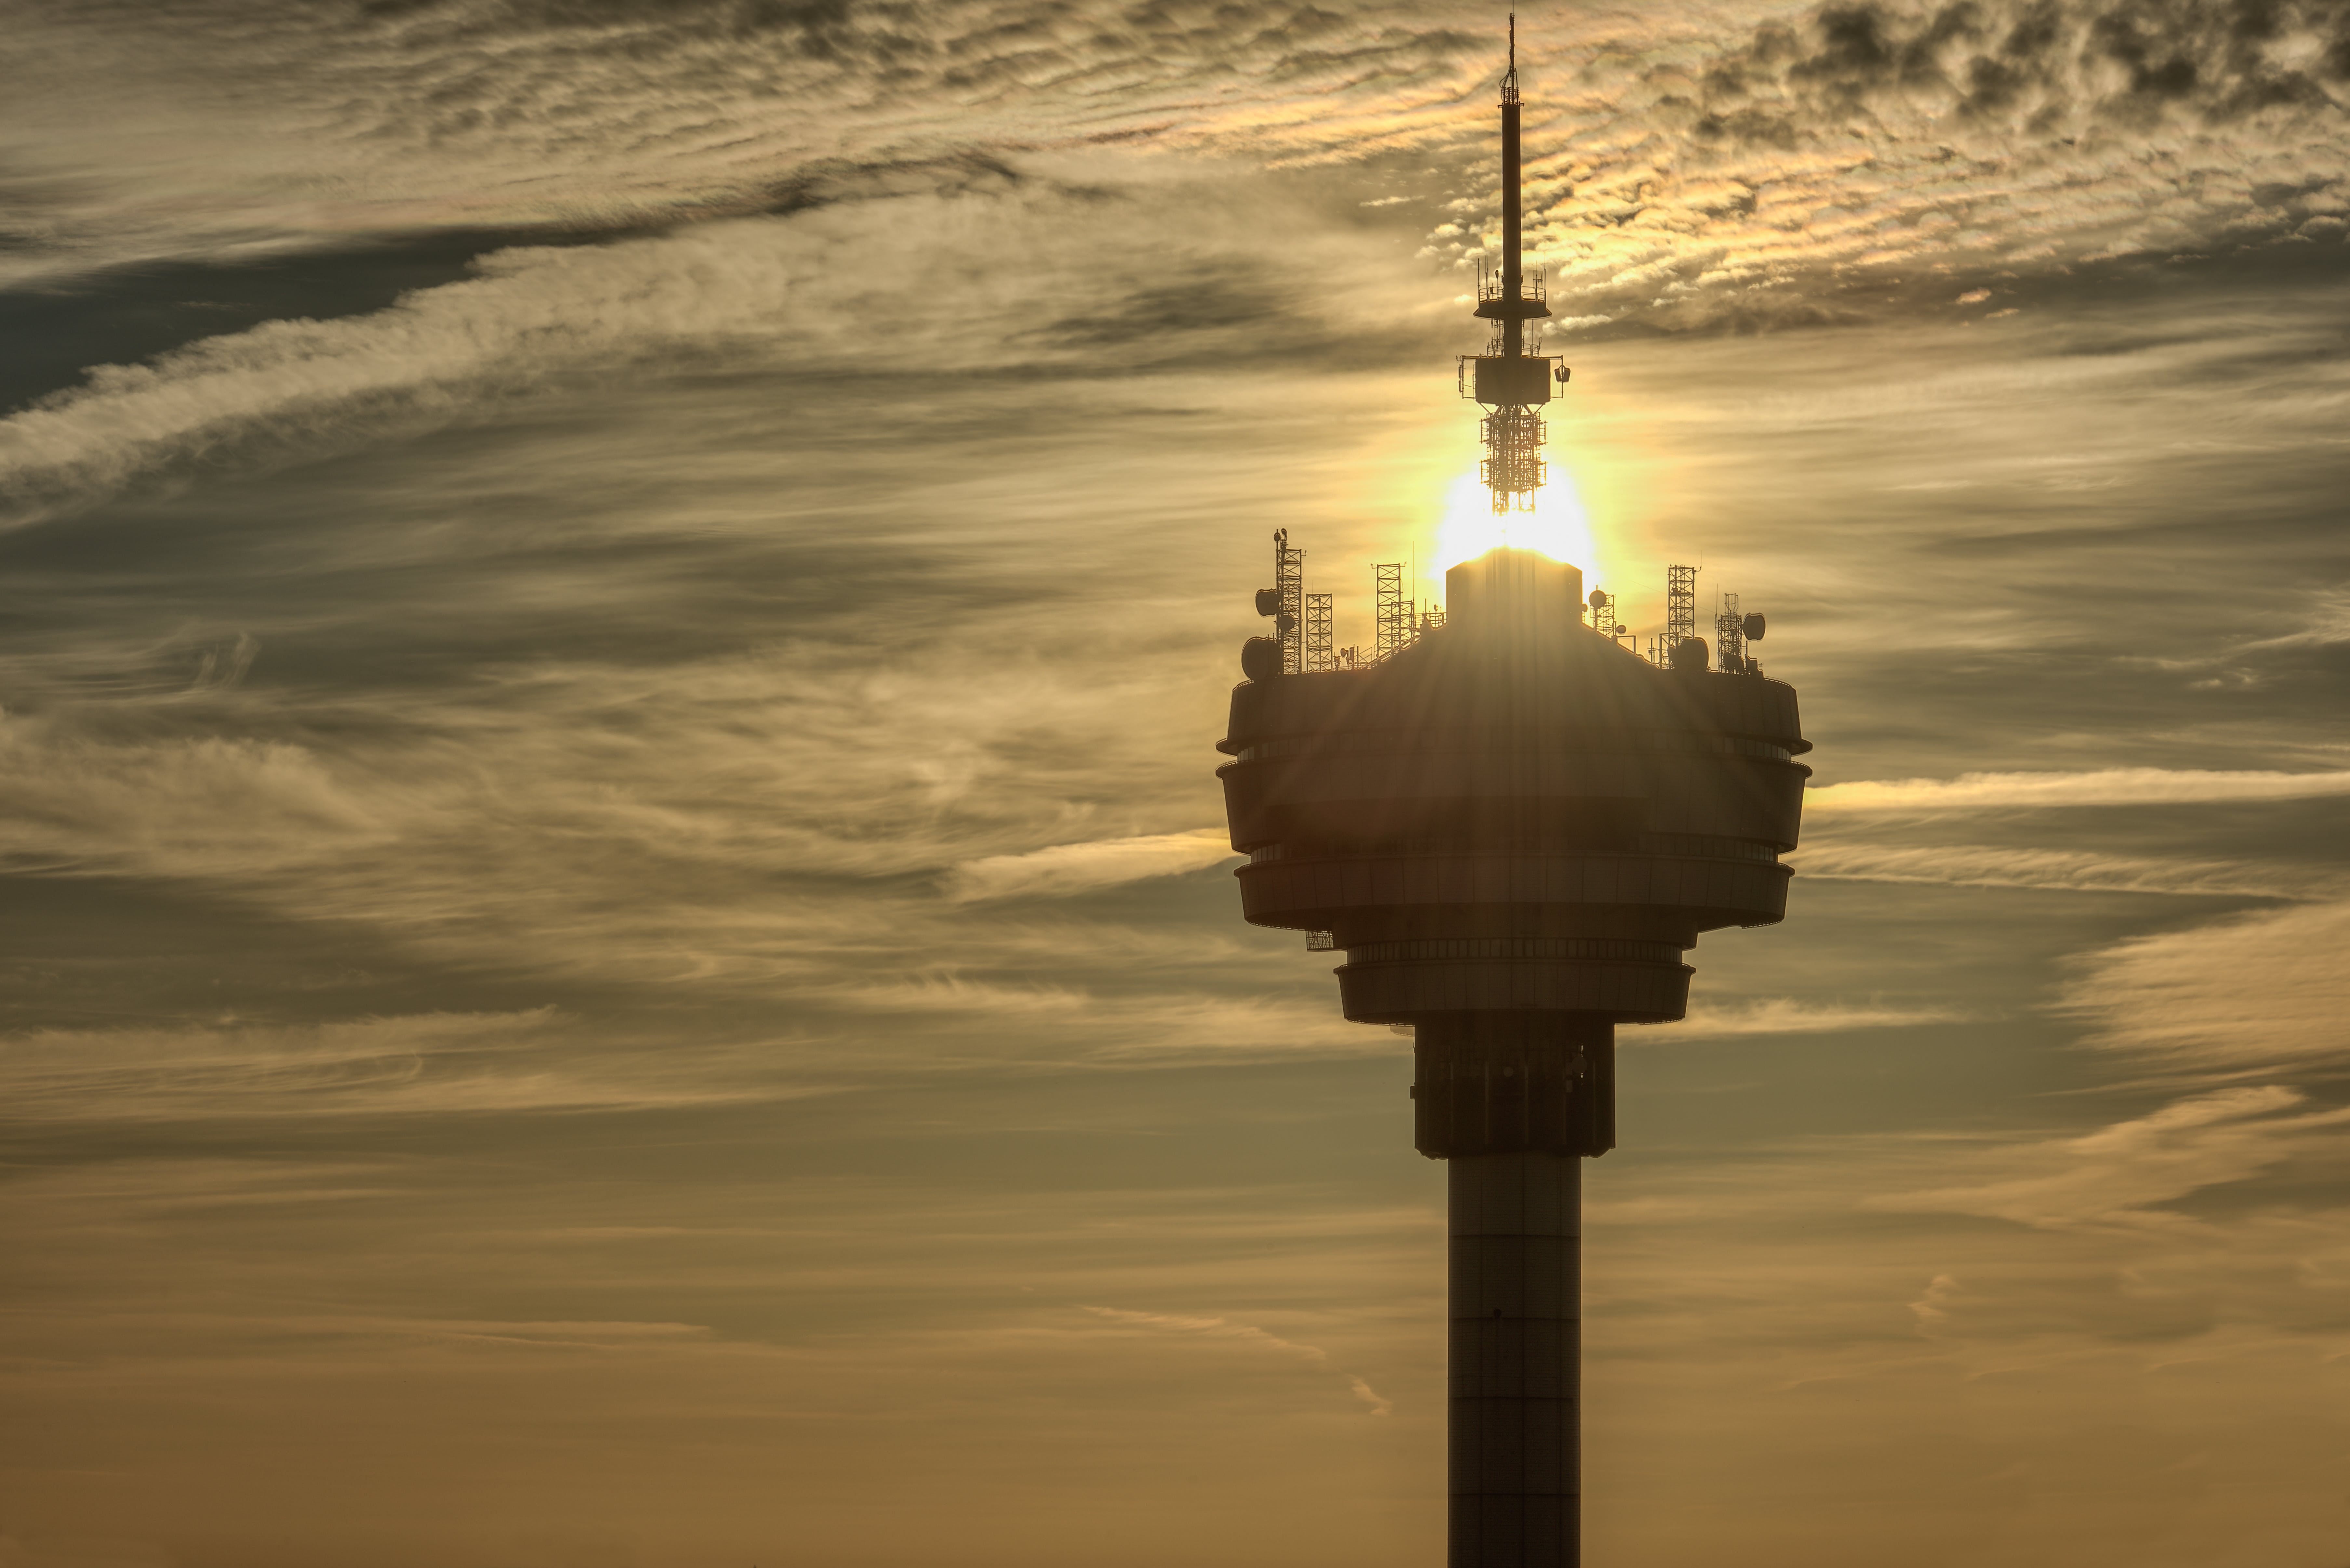 Free stock photo of cloudy sky, golden sun, television tower